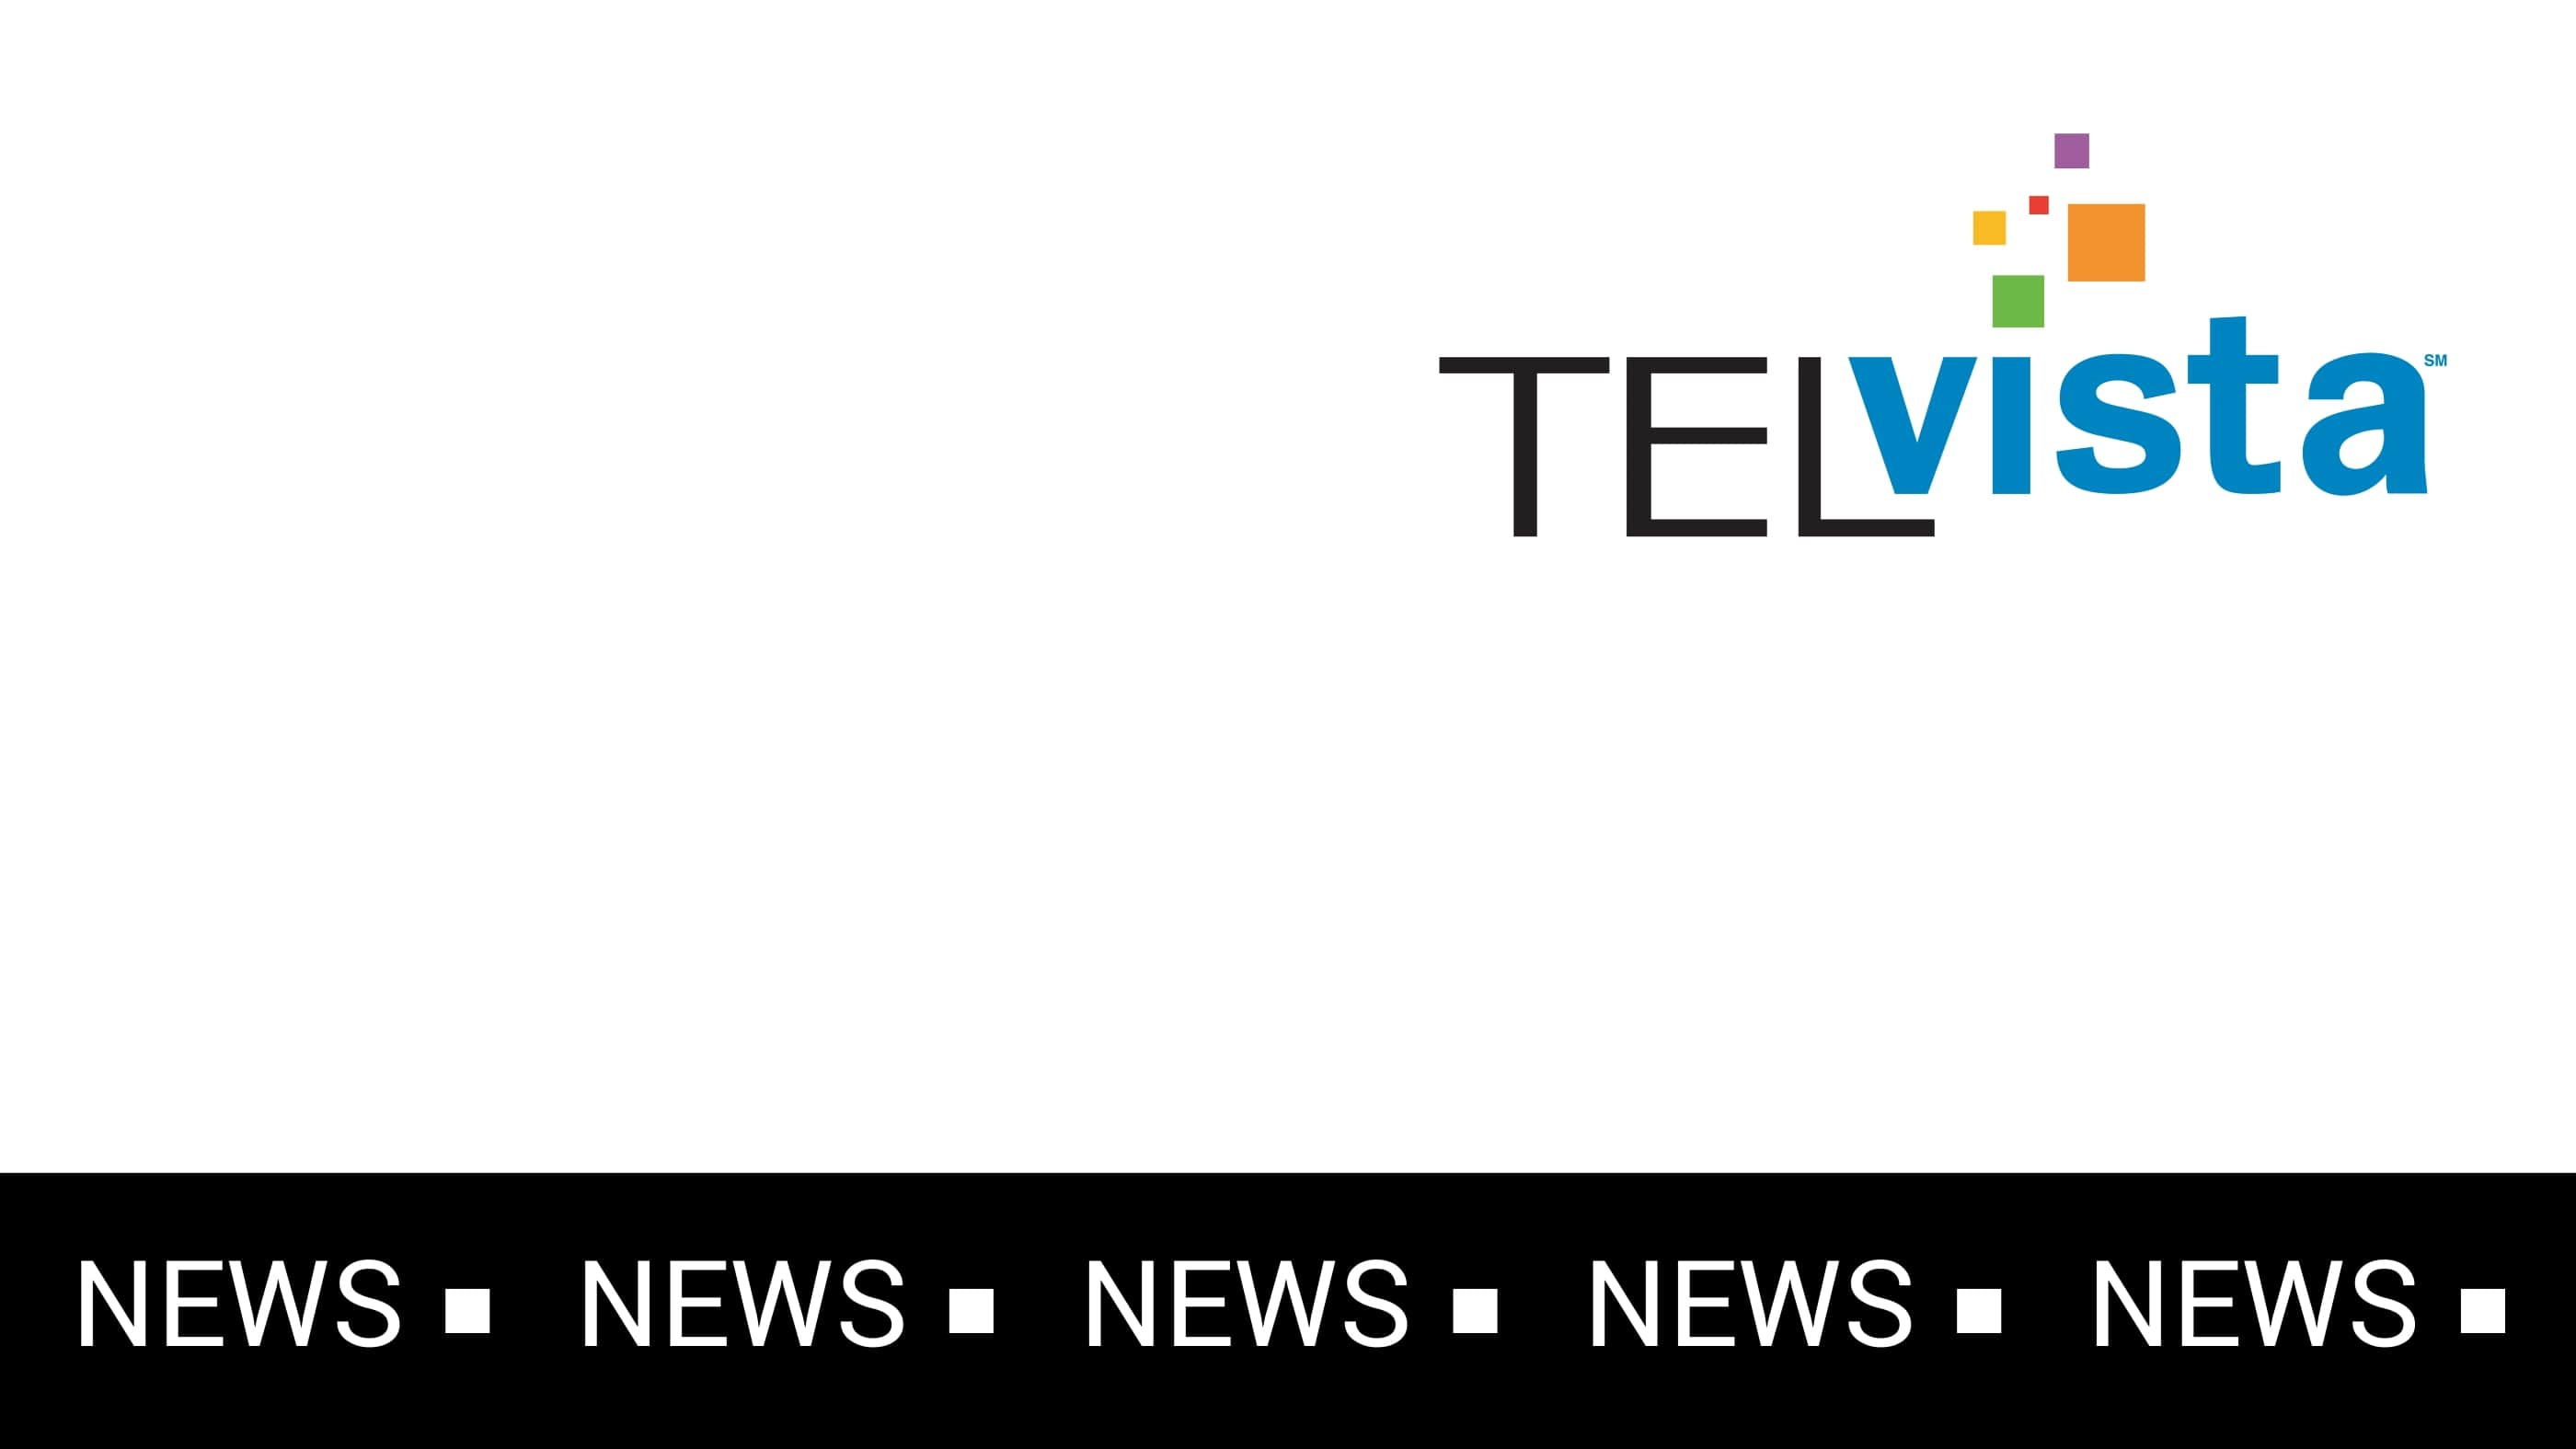 Telvista announces 150 new jobs coming to Danville VA